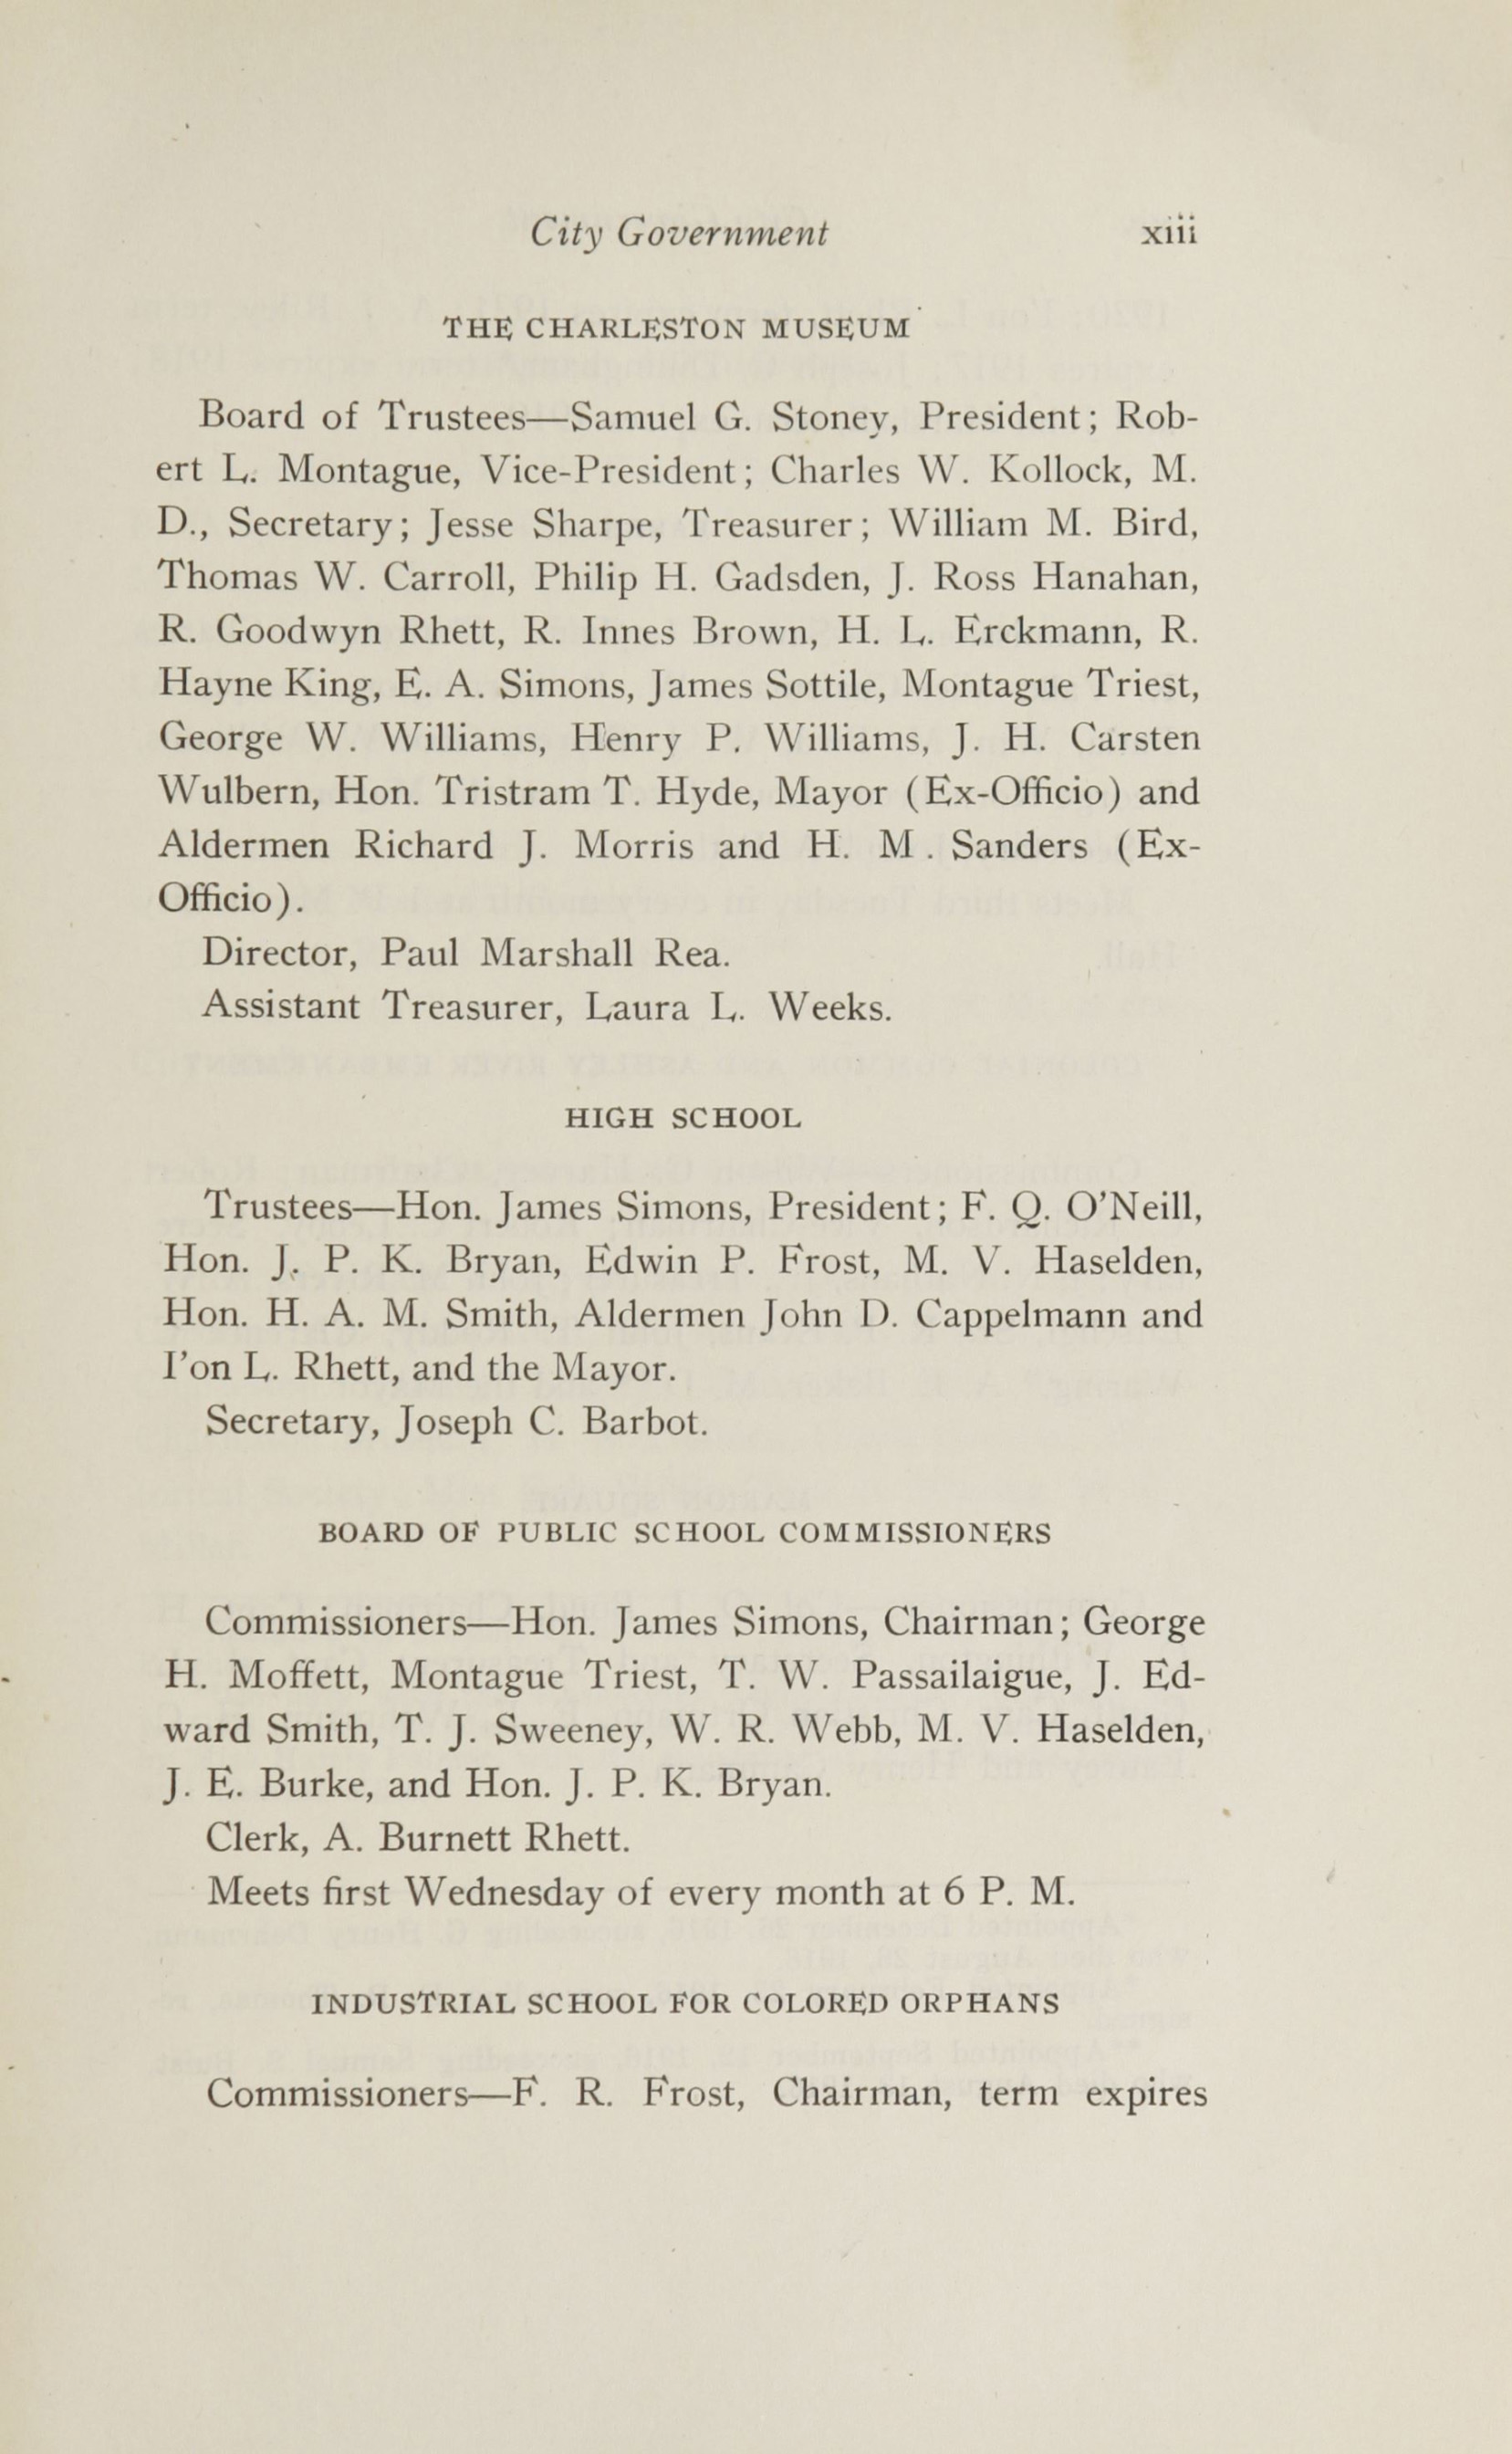 Charleston Yearbook, 1916, page xiii